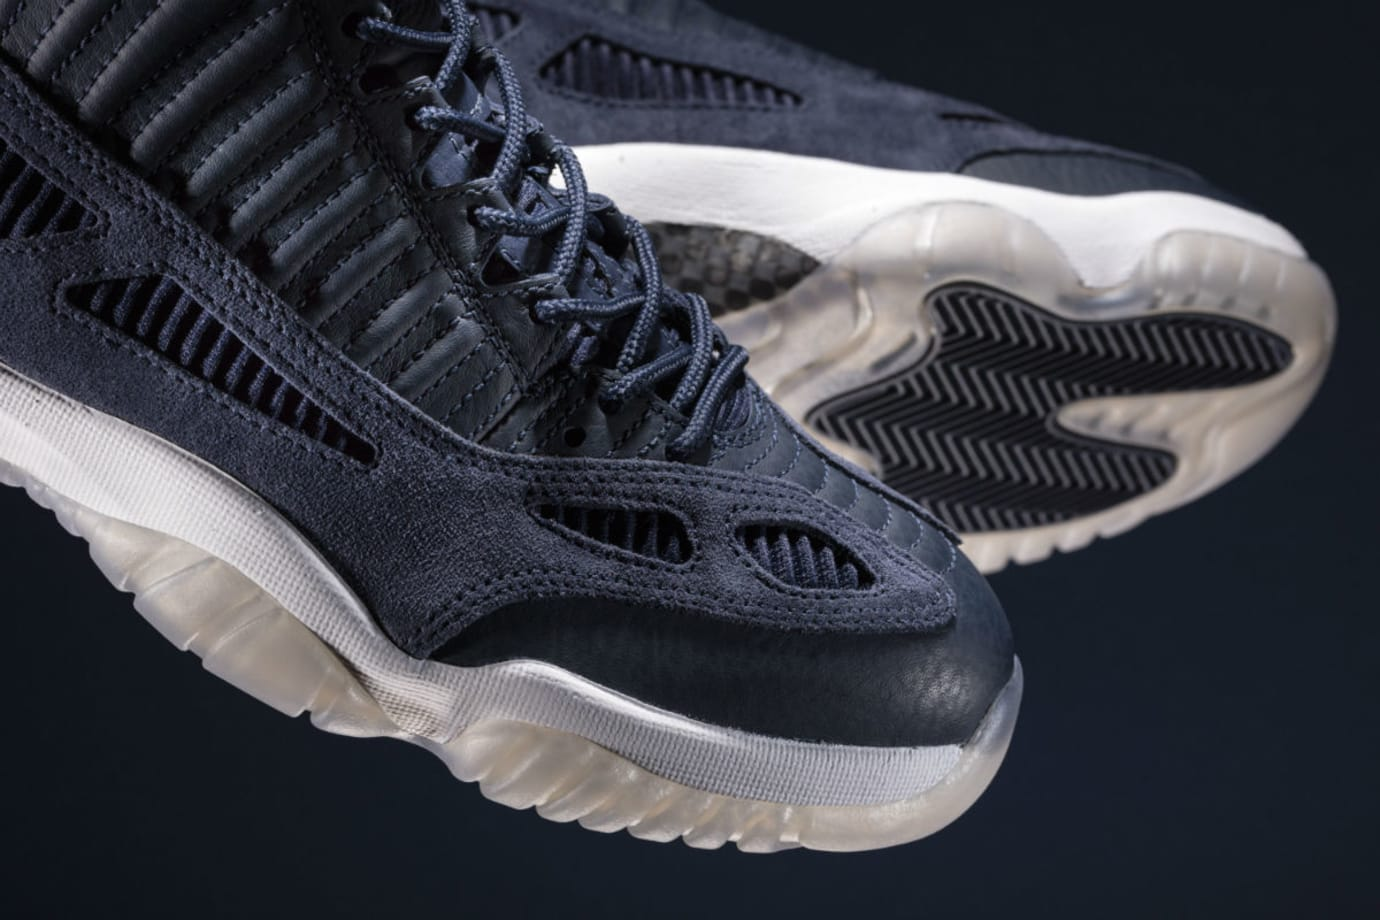 f3d8317ecbee Air Jordan 11 Low IE Midnight Navy Release Date 919712-400 (1 ...